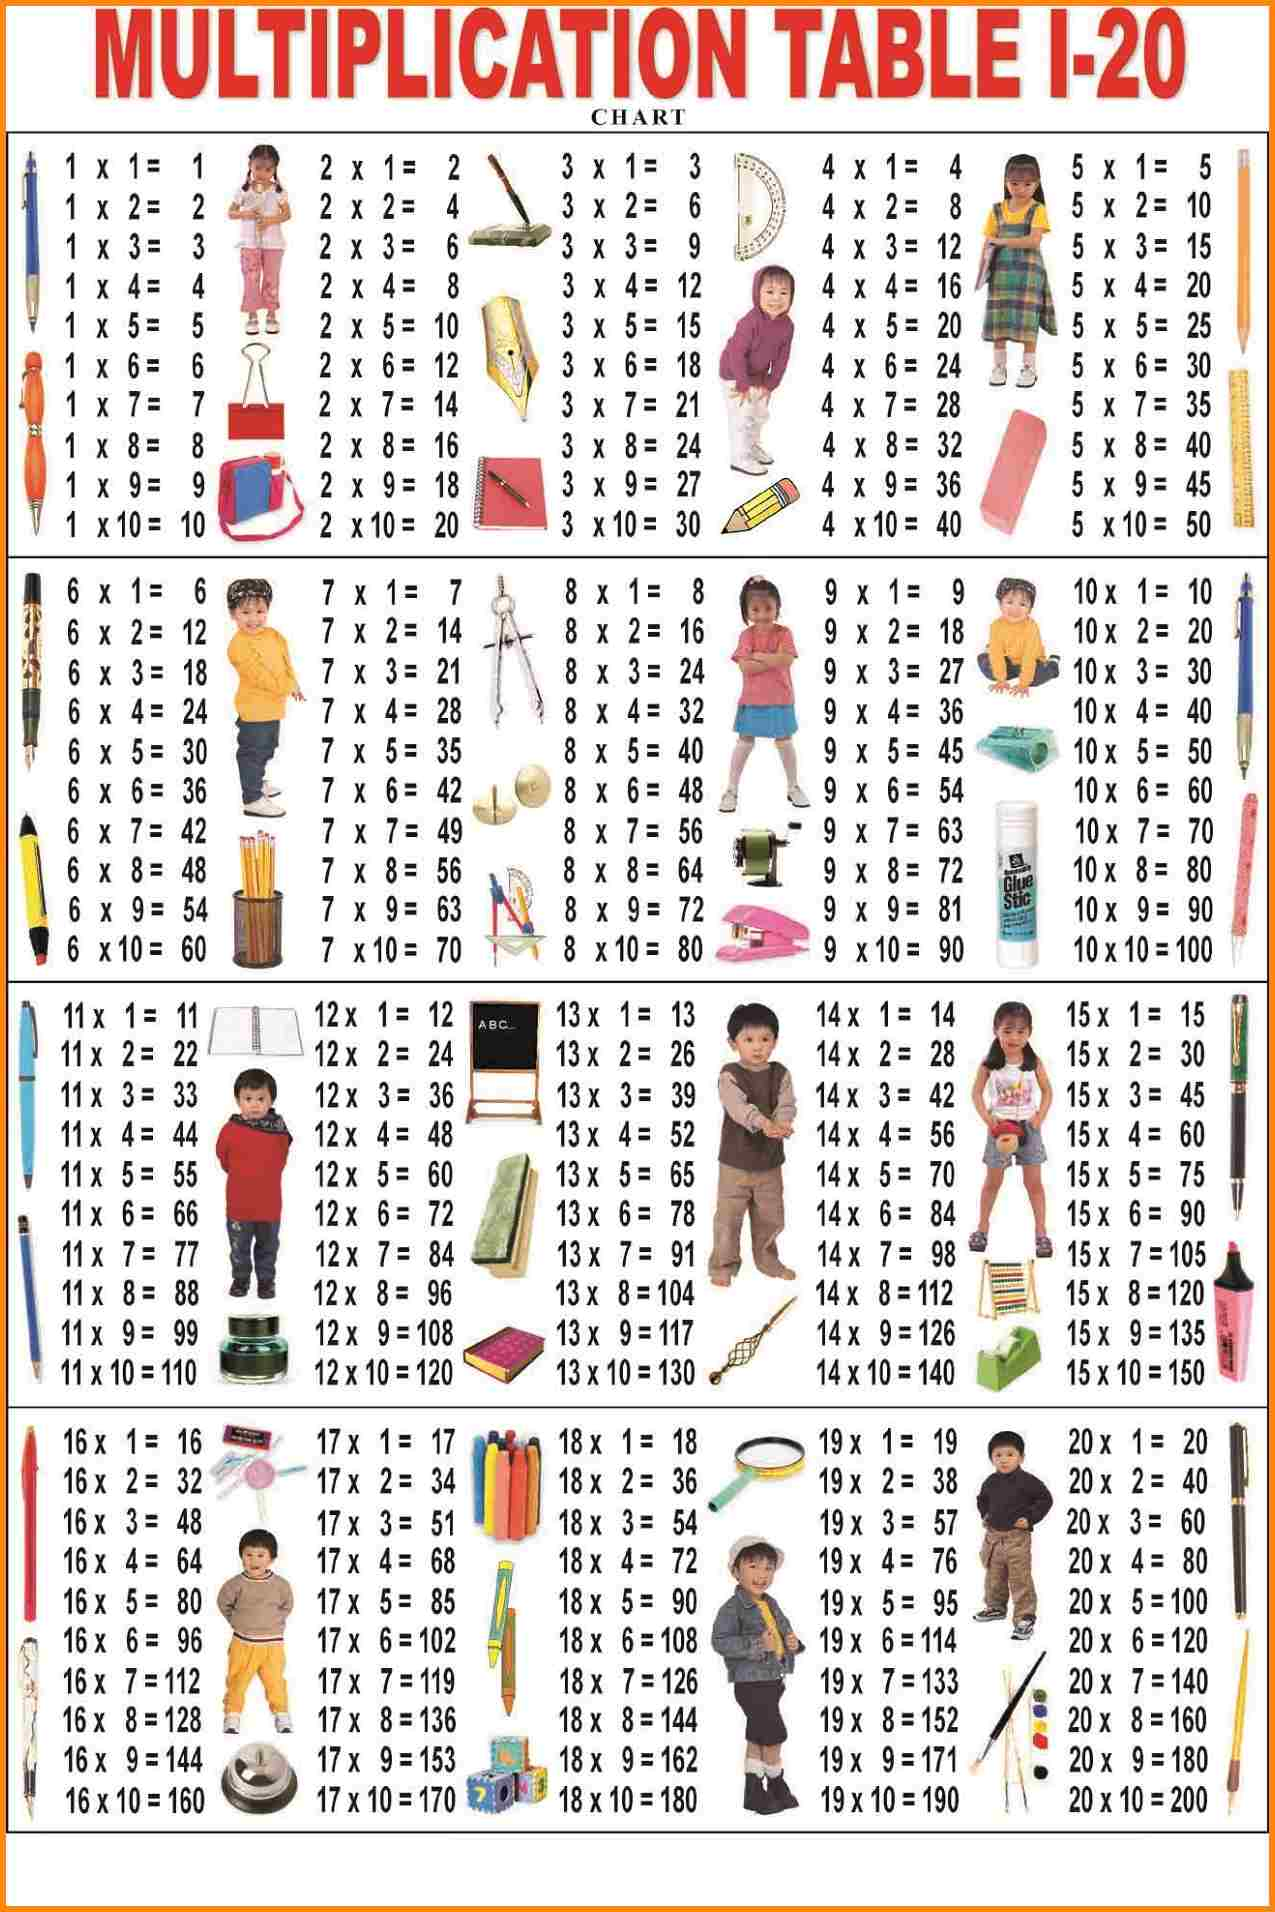 Download Multiplication tables from 1 to 20 chart guide